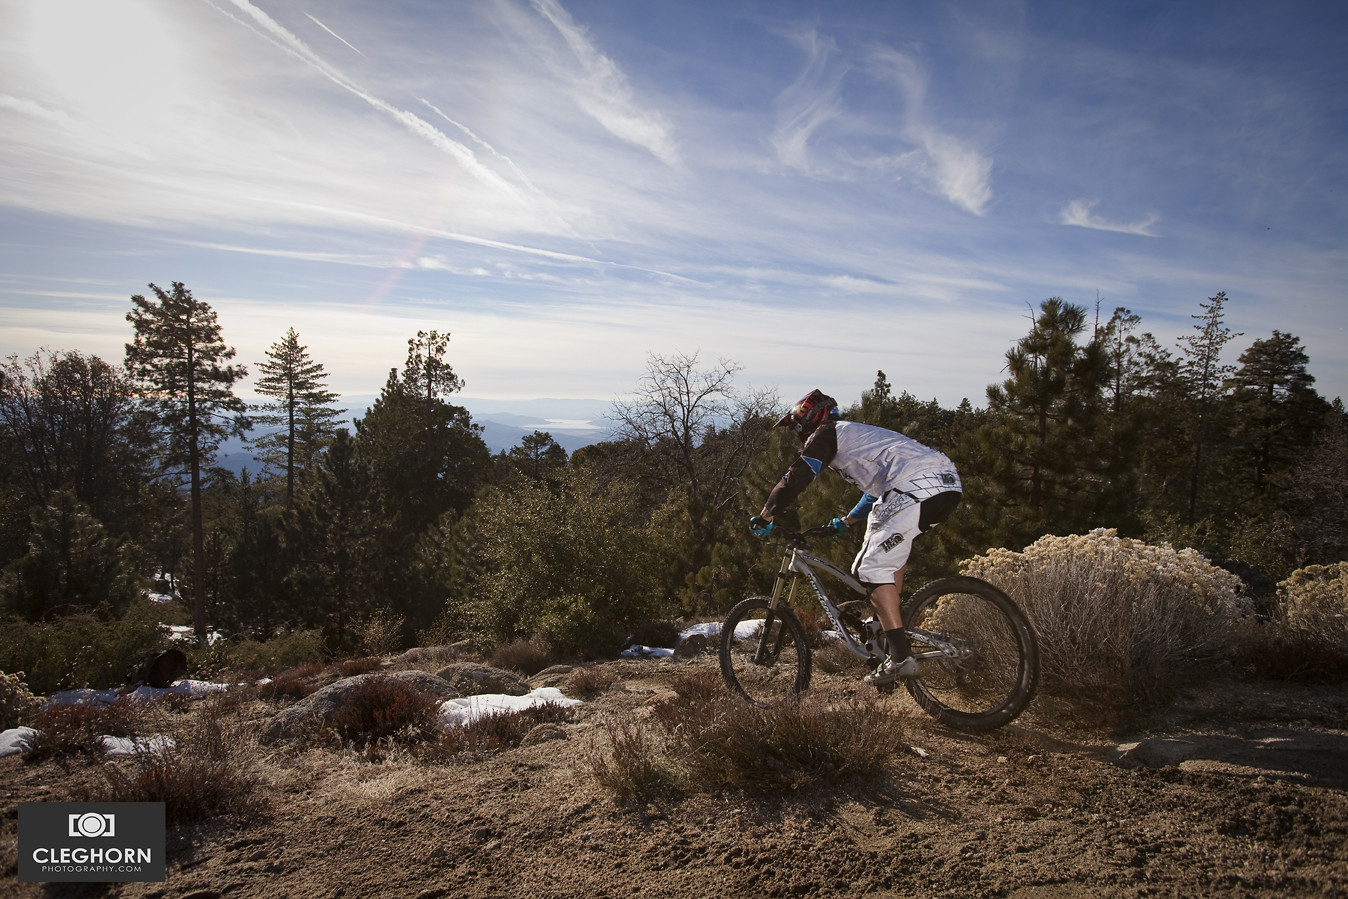 David Klaassen Van Oorschot - Cleghorn Photography - Mountain Biking Pictures - Vital MTB